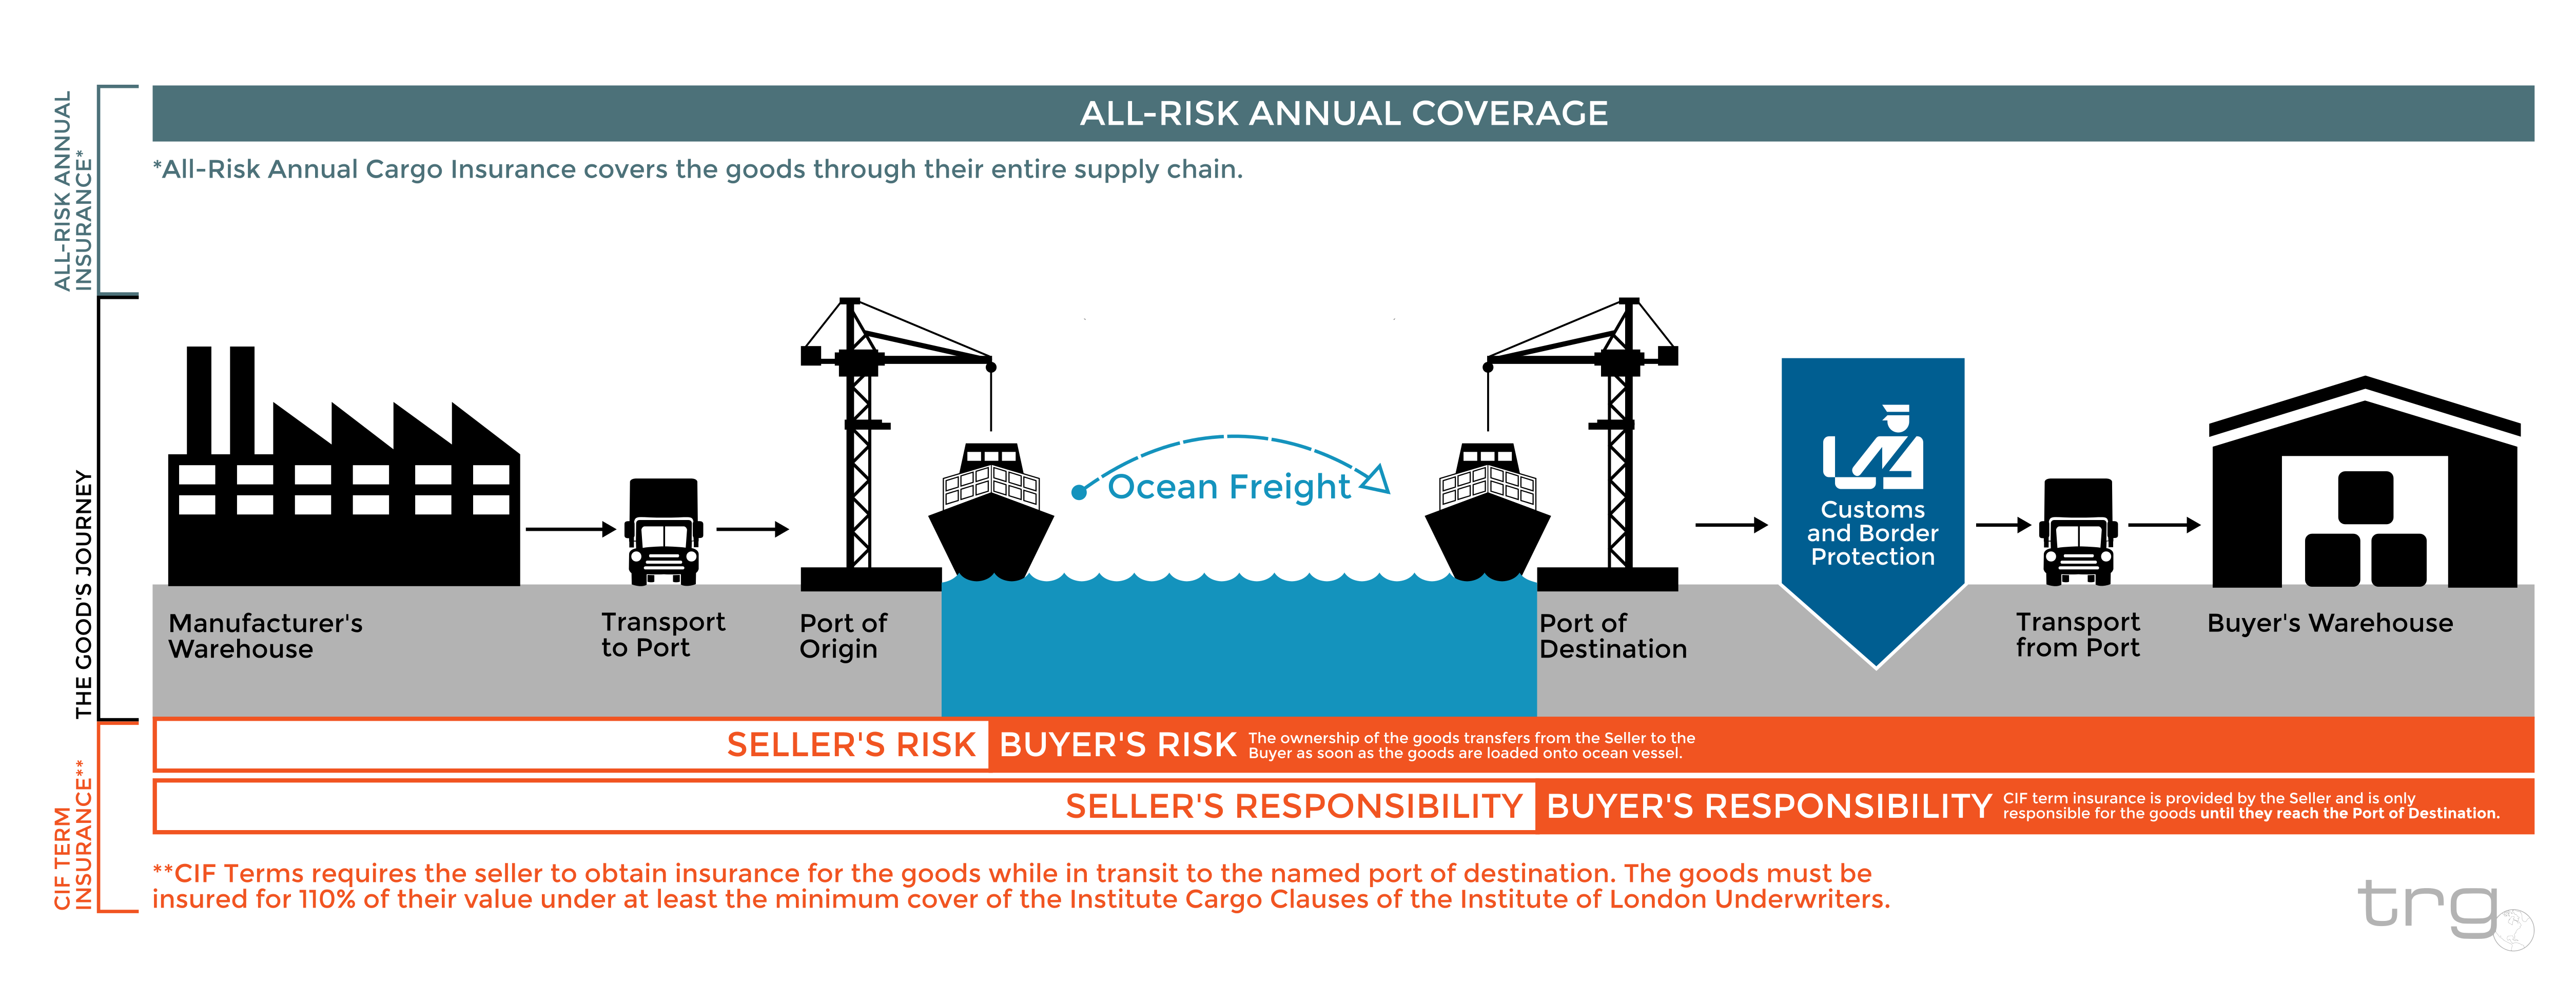 Trg Provides A Graphic To Explain What Cif Is For U S Importers